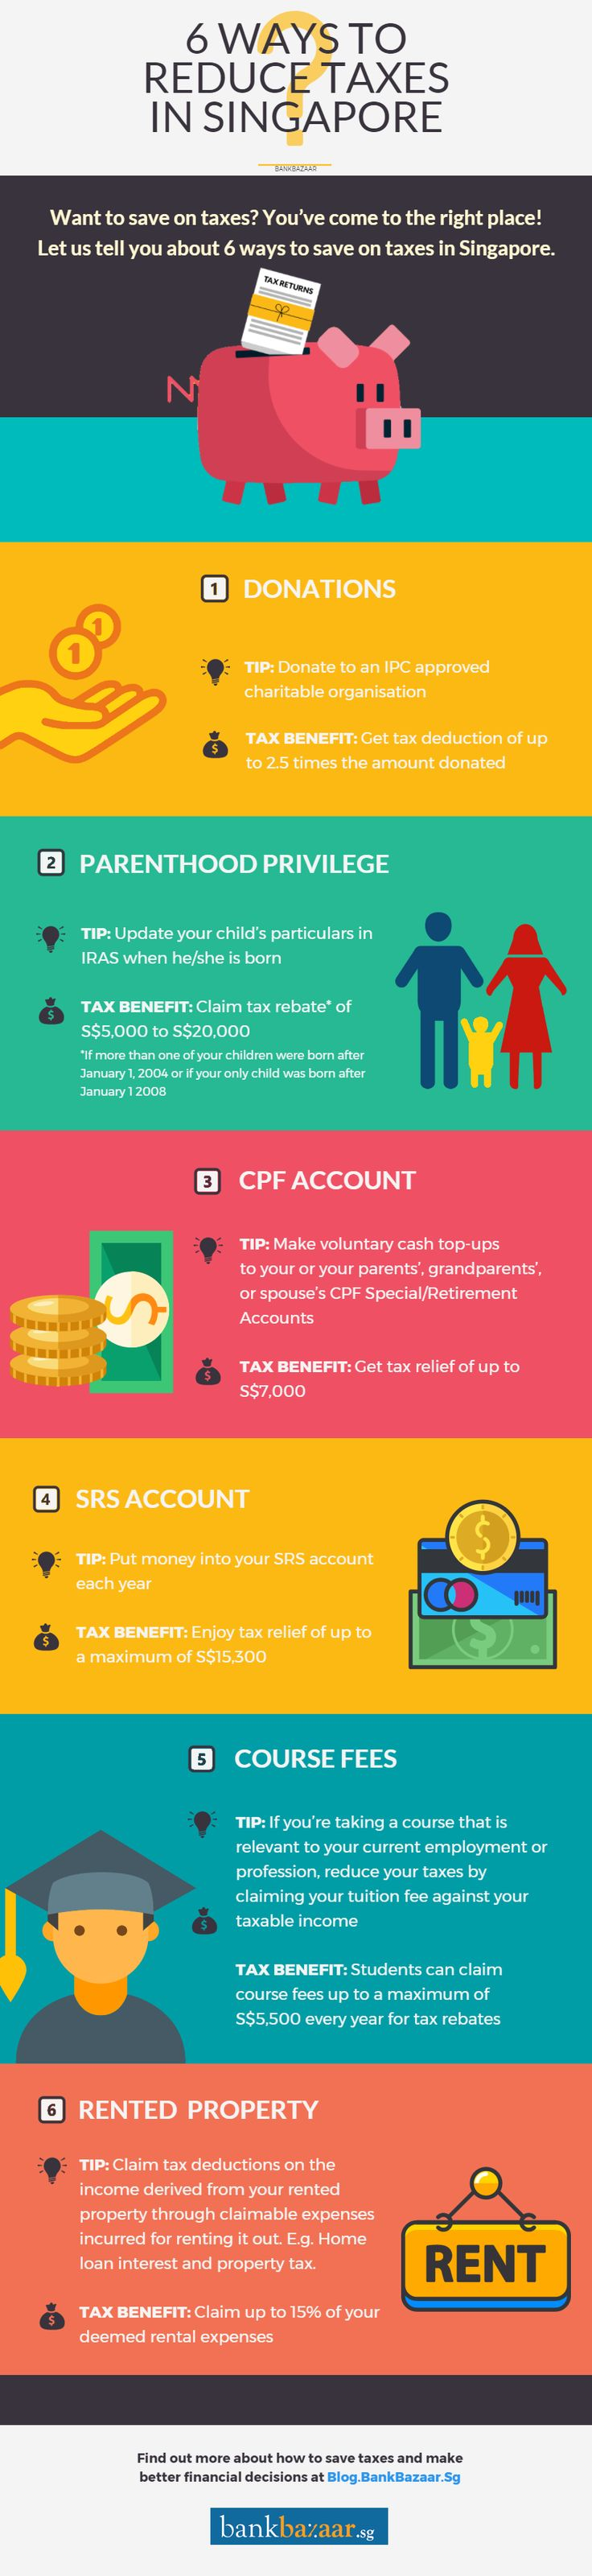 6 ways to reduce your taxes in singapore infographic